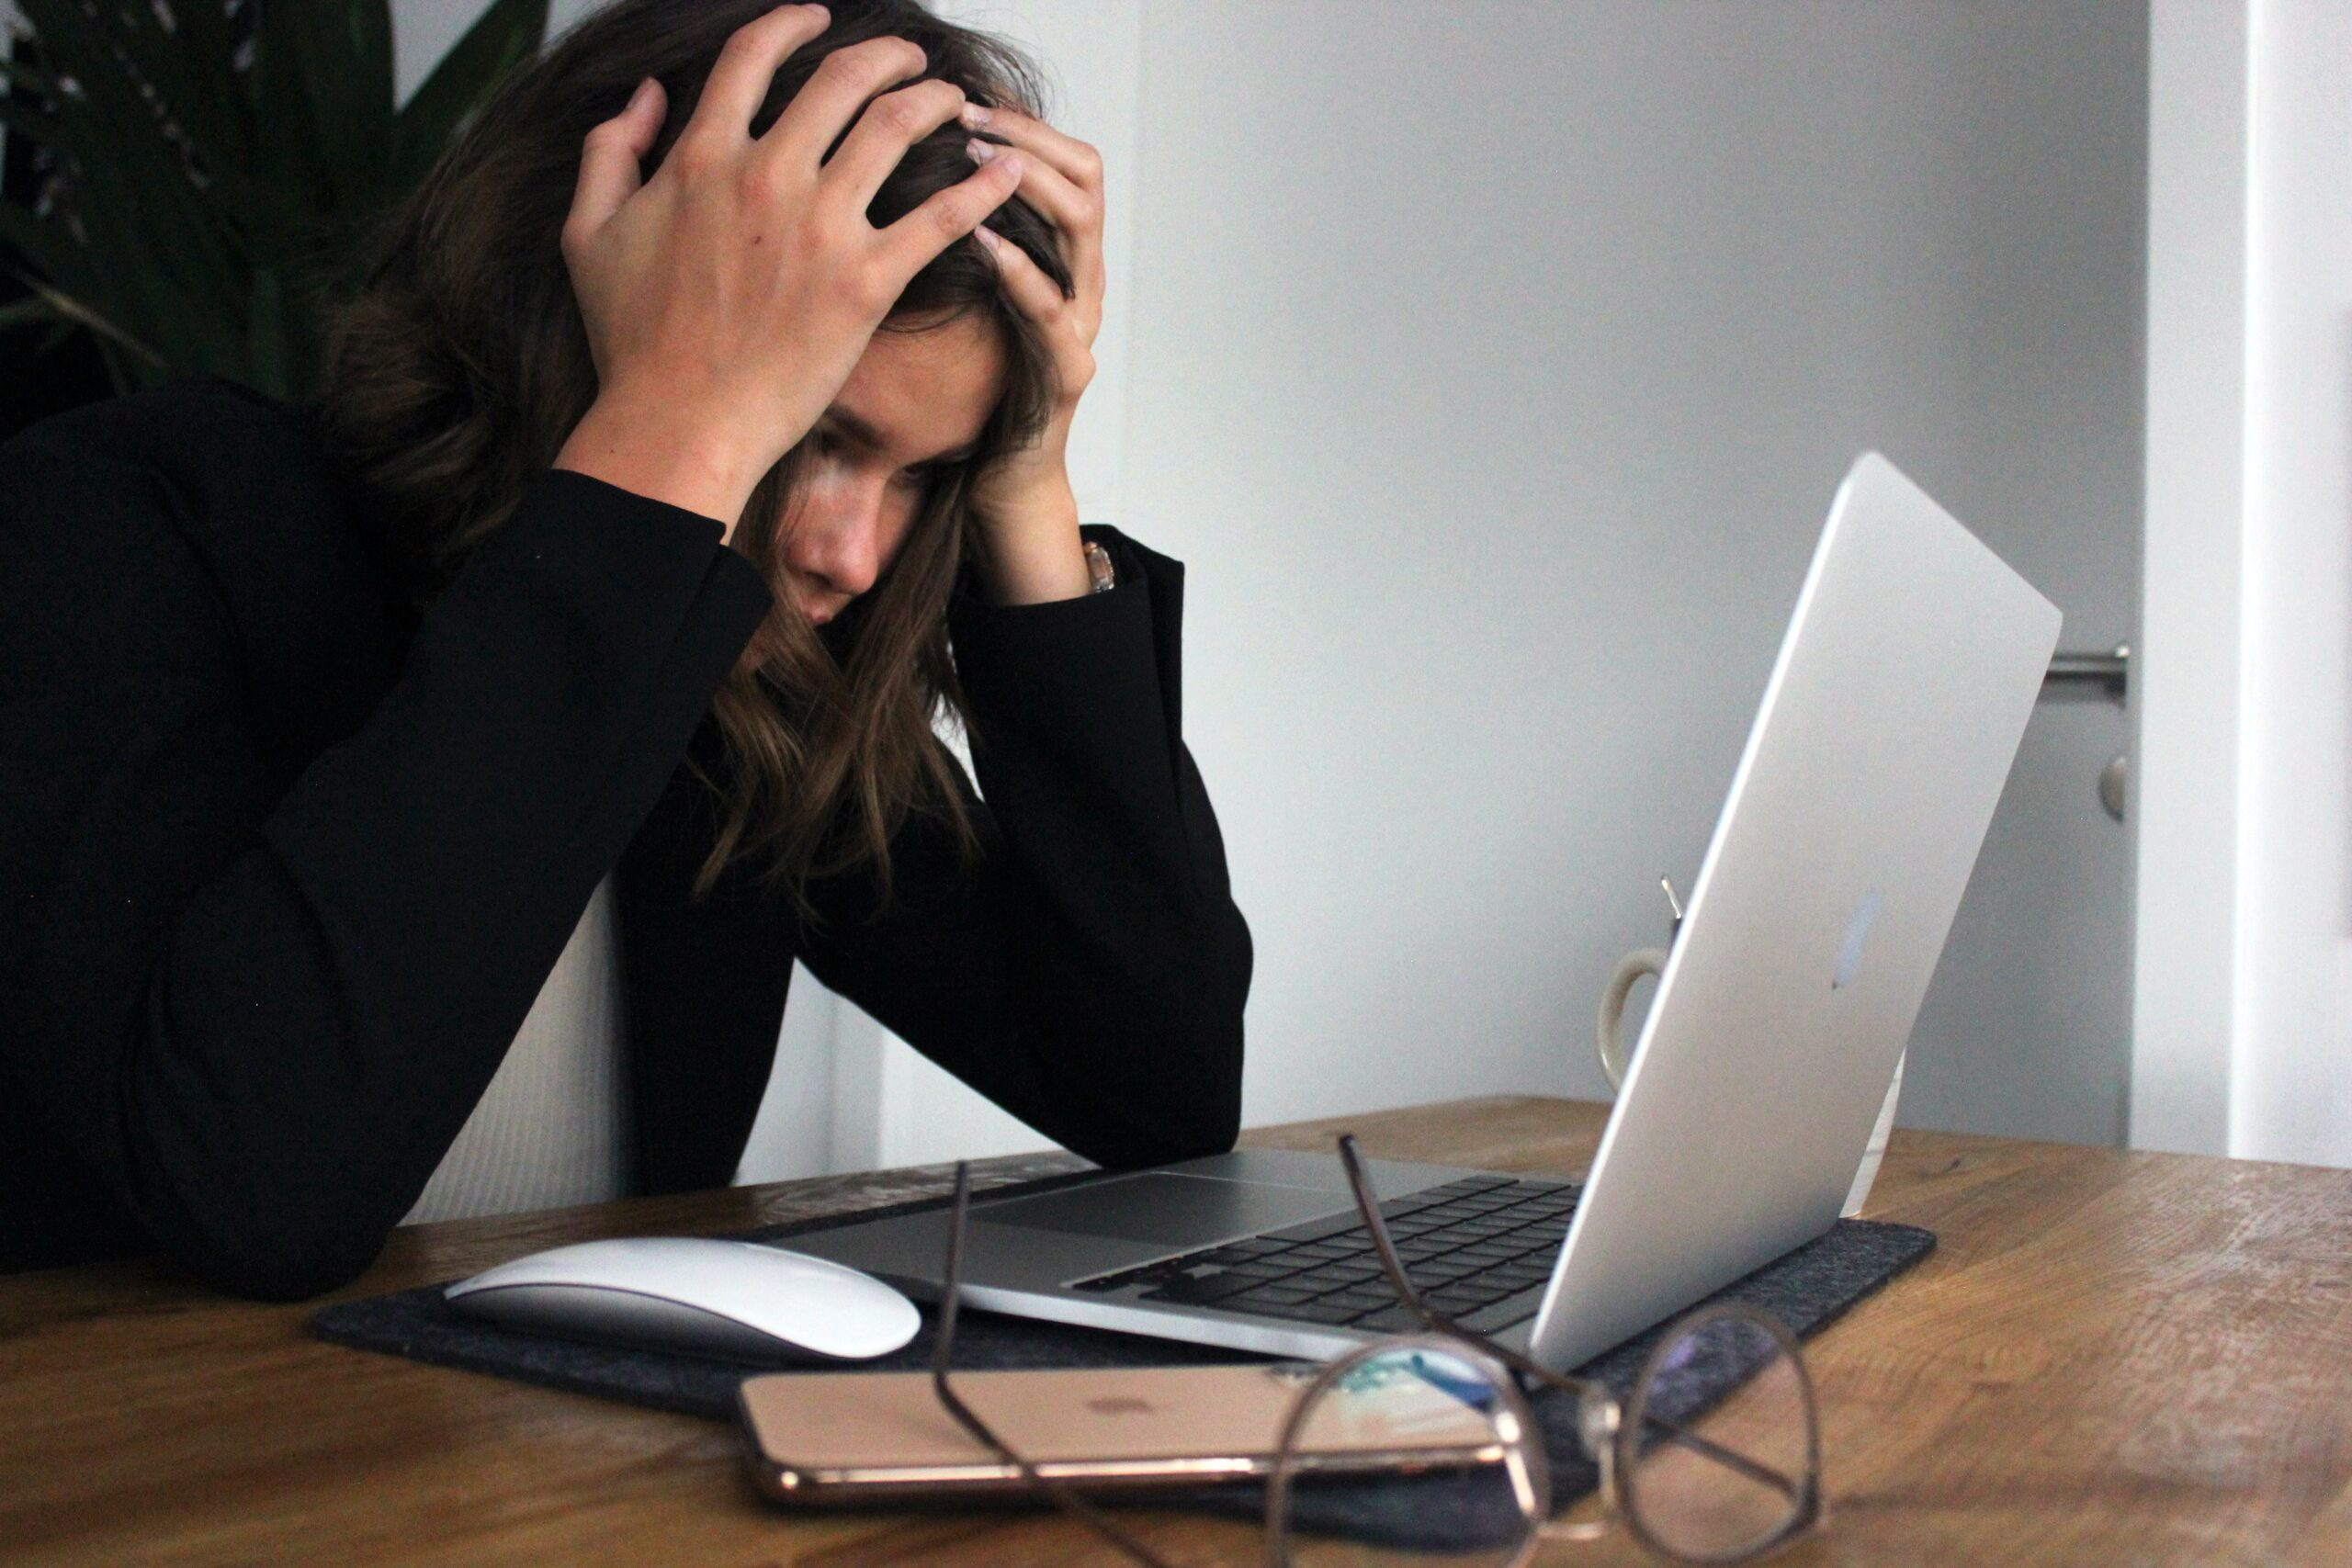 frustrated laptop user